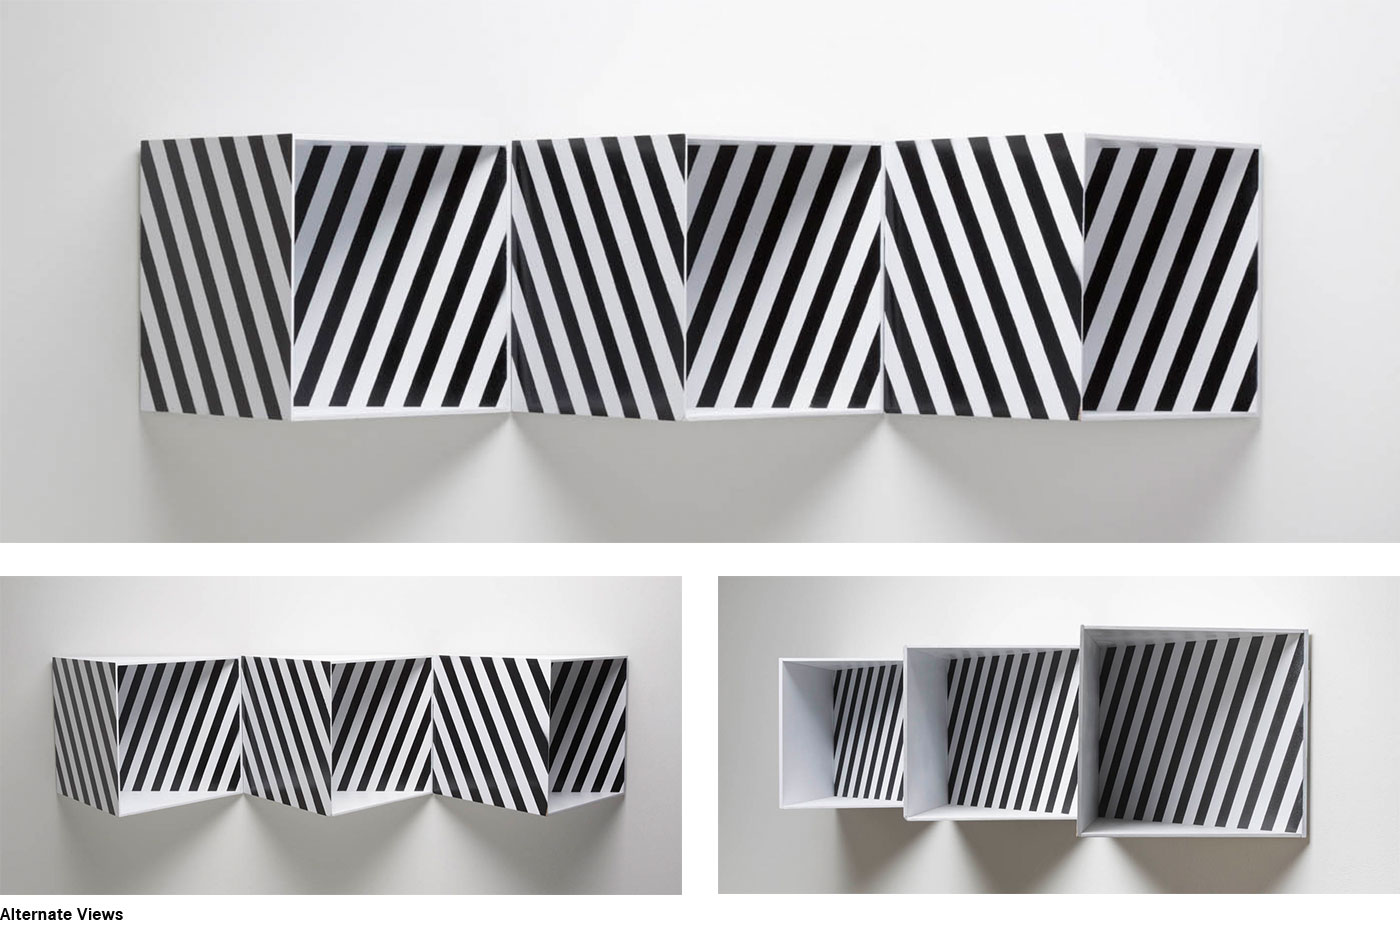 Vineta Chugh - Illusion Shelves